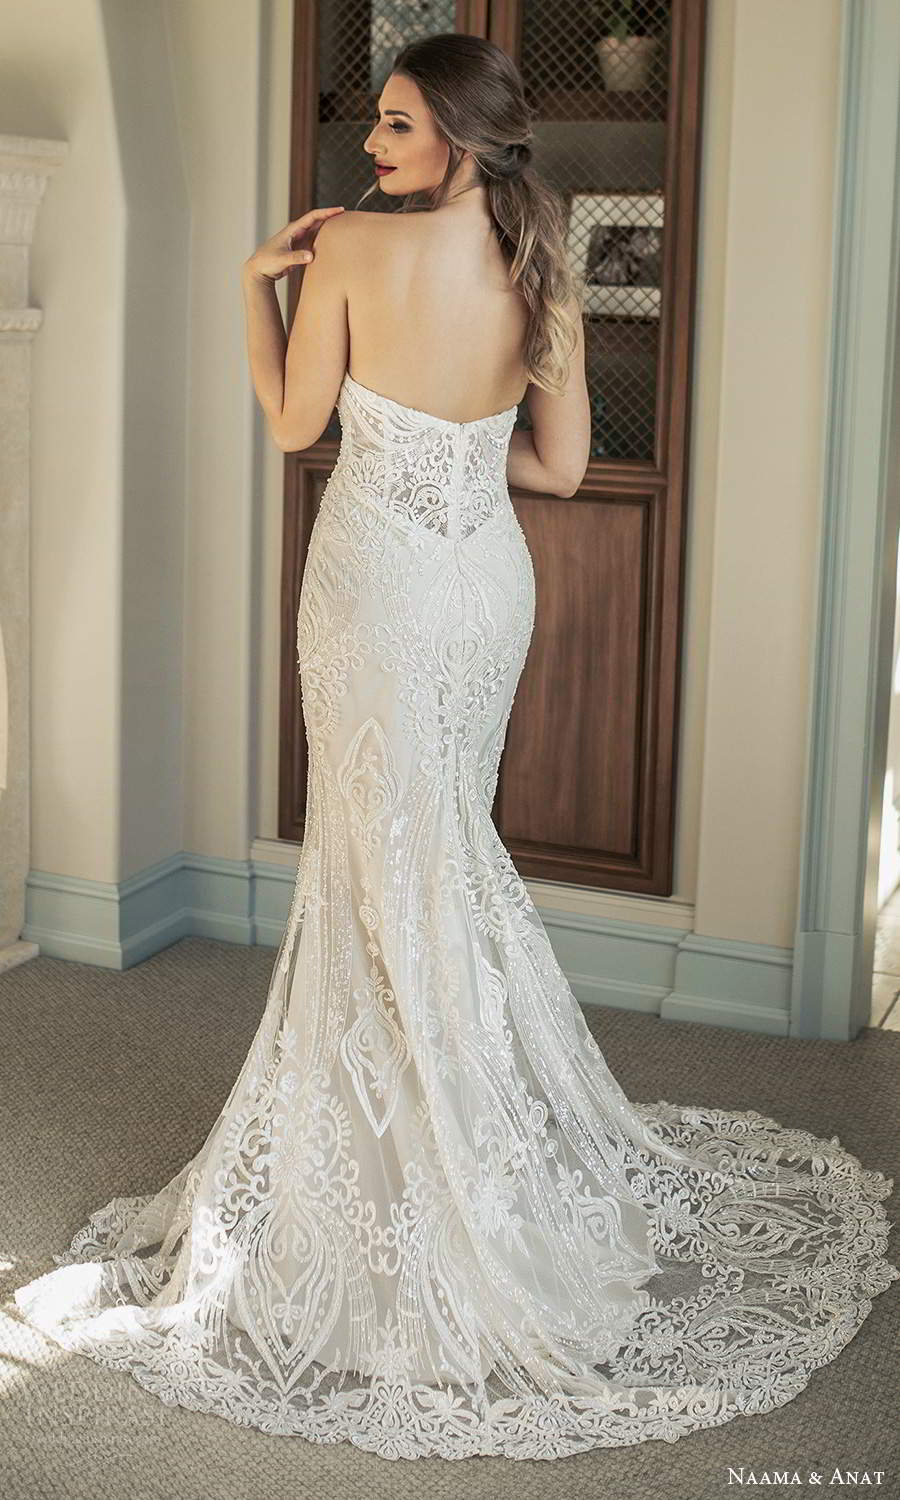 naama and anat fall 2021 bridalstrapless plunging sweetheart neckline fully embellished fit flare mermaid wedding dress chapel train (5) bv